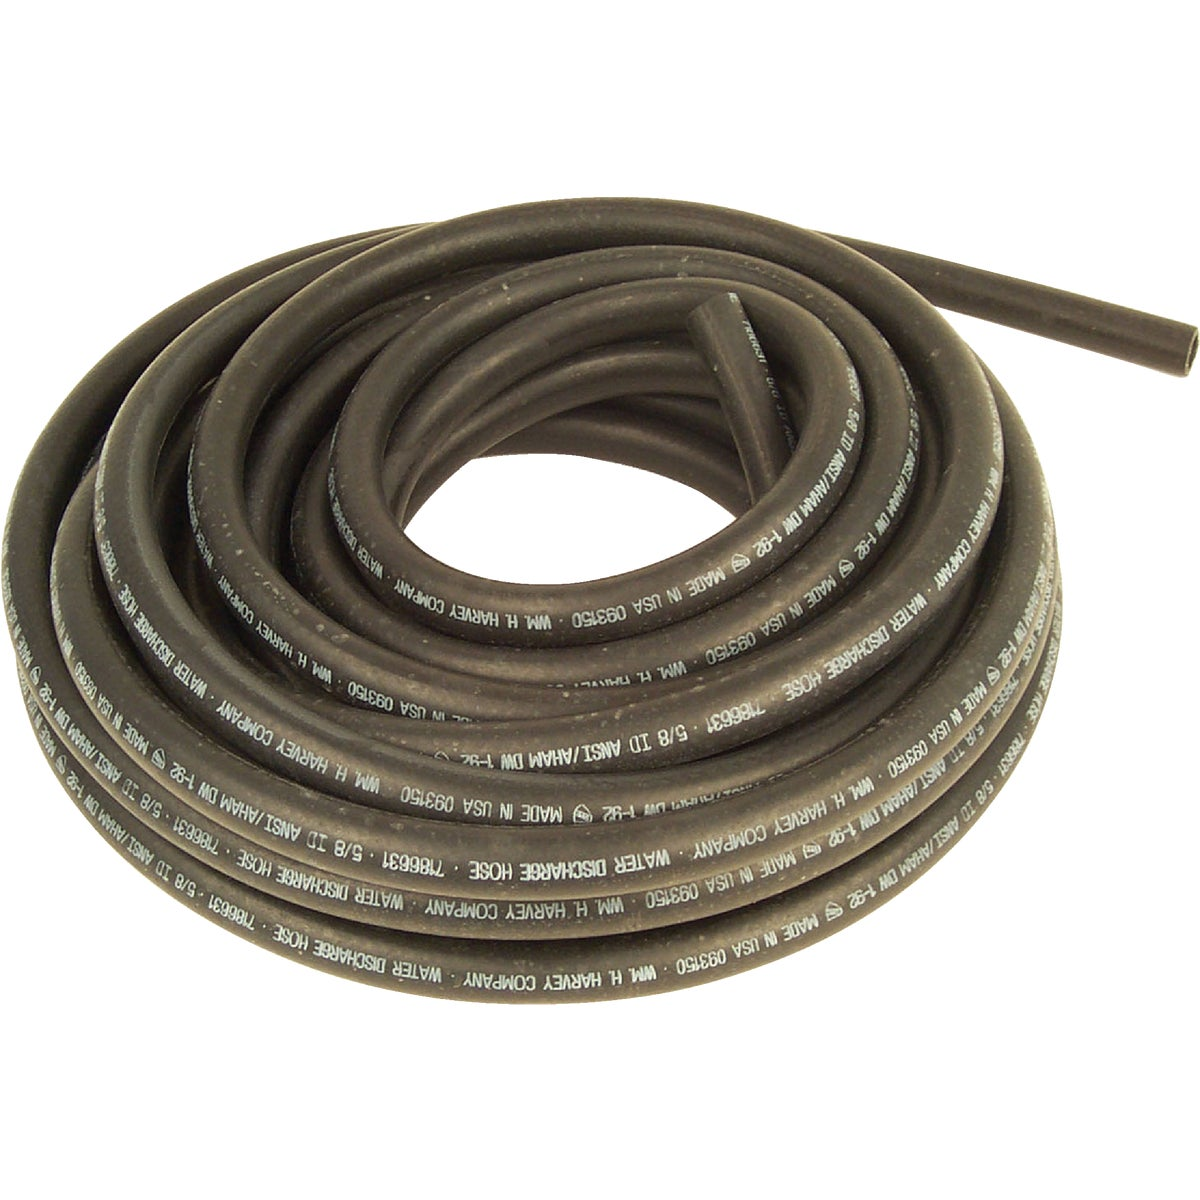 "5/8""X50' DISHWASHER HOSE - 093150 by Wm H Harvey Co"